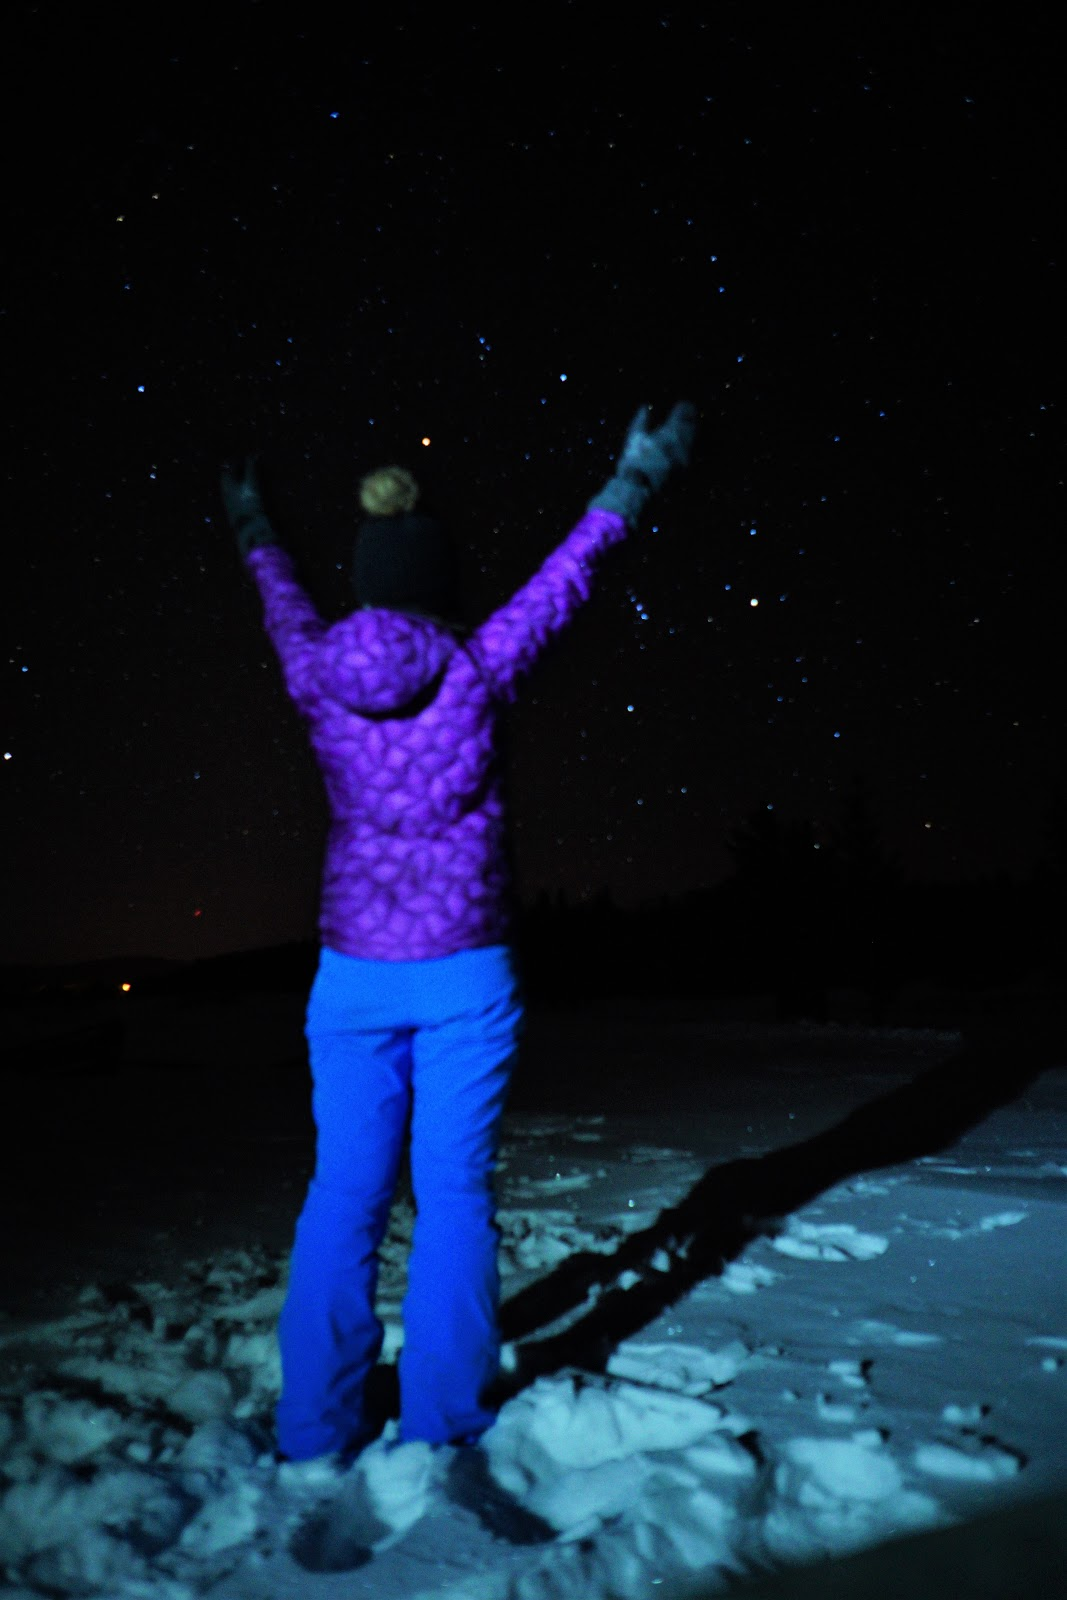 Stargazing at Cypress Hills Provincial Park